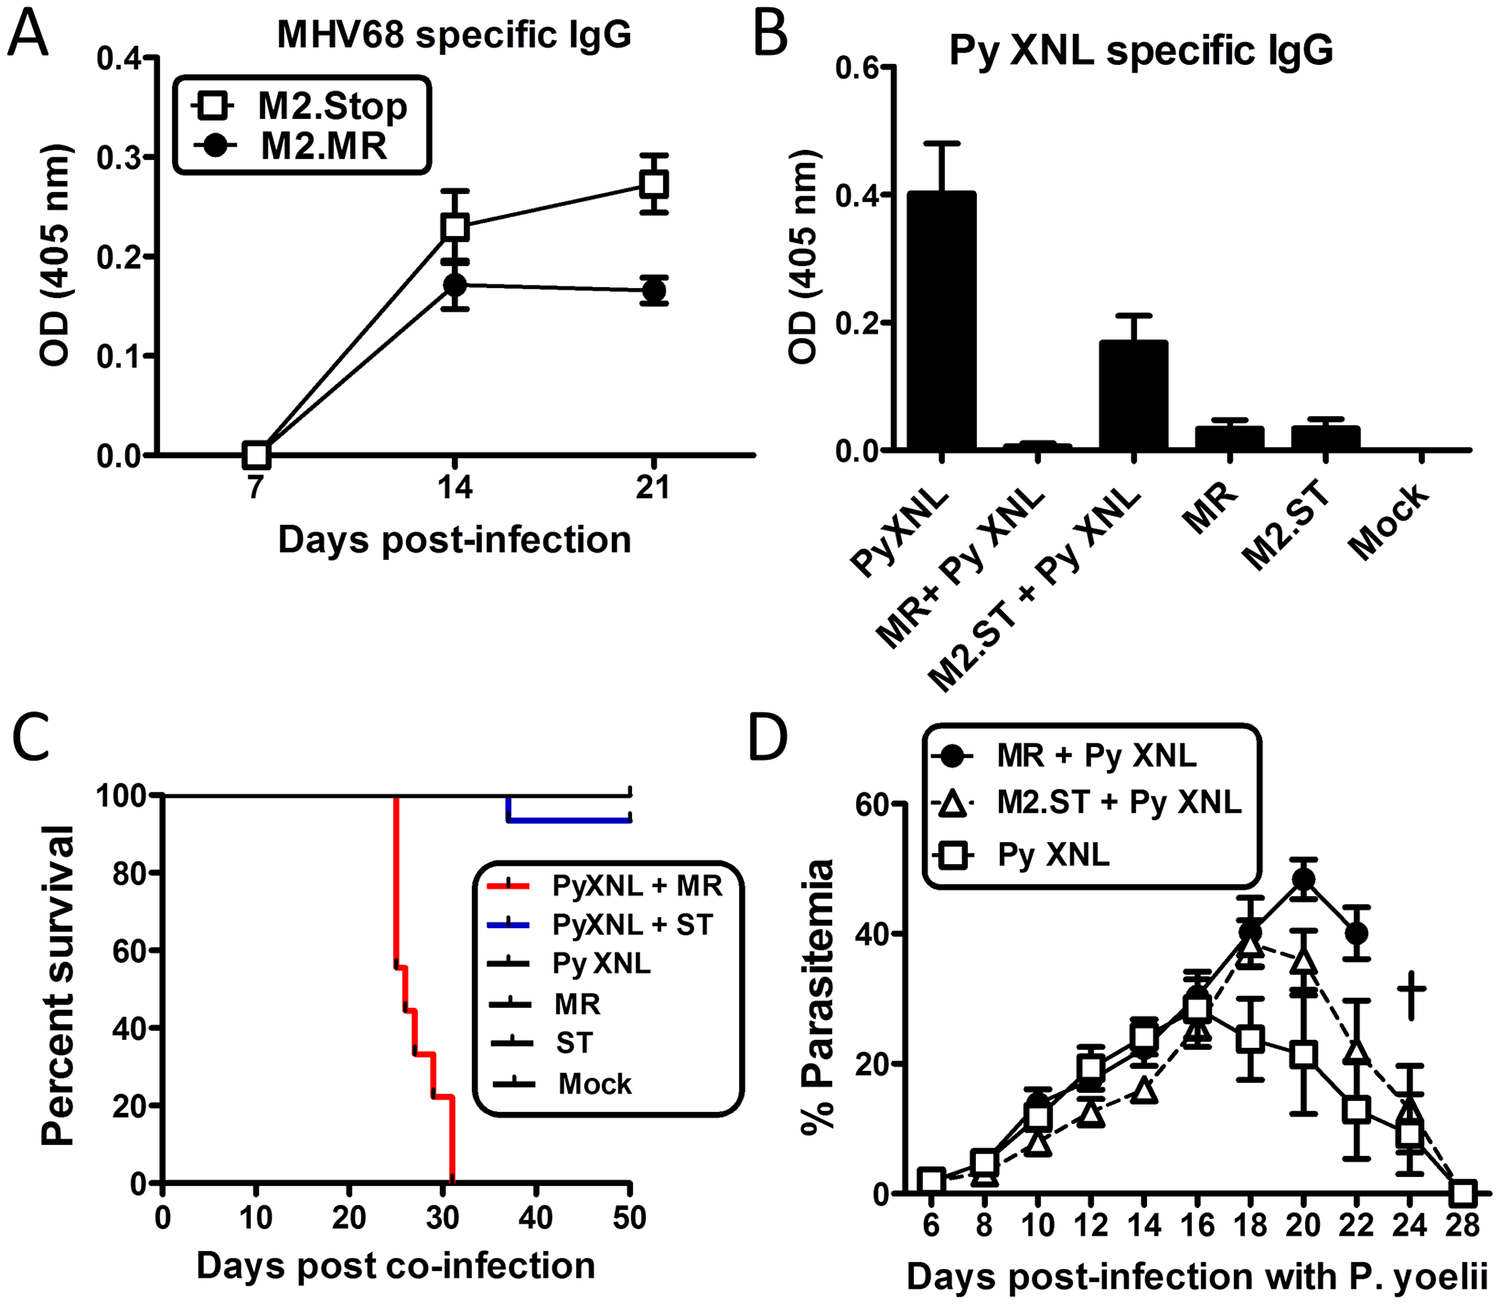 The MHV68 M2 gene product is necessary for virus mediated humoral suppression and lethality during <i>Plasmodium</i> co-infection.